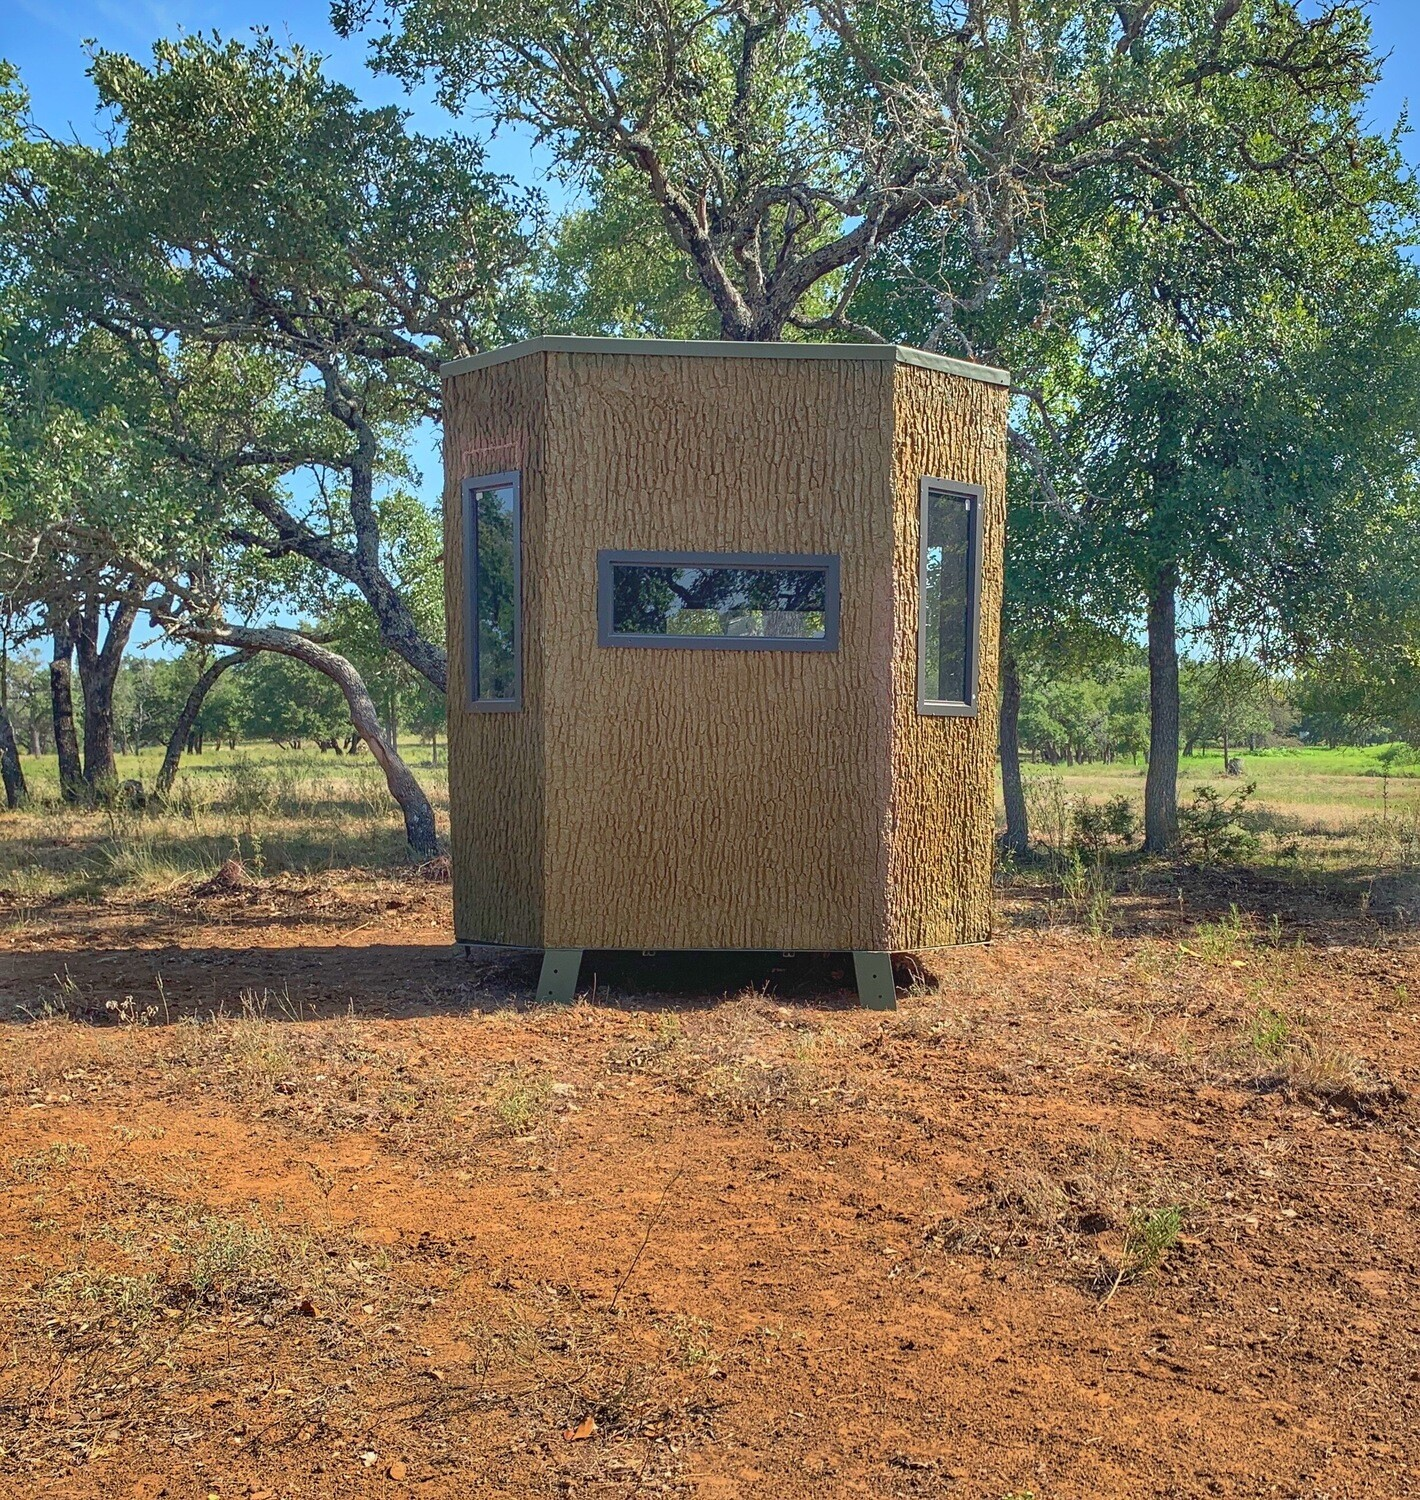 6X6 Snyper Deer Blind